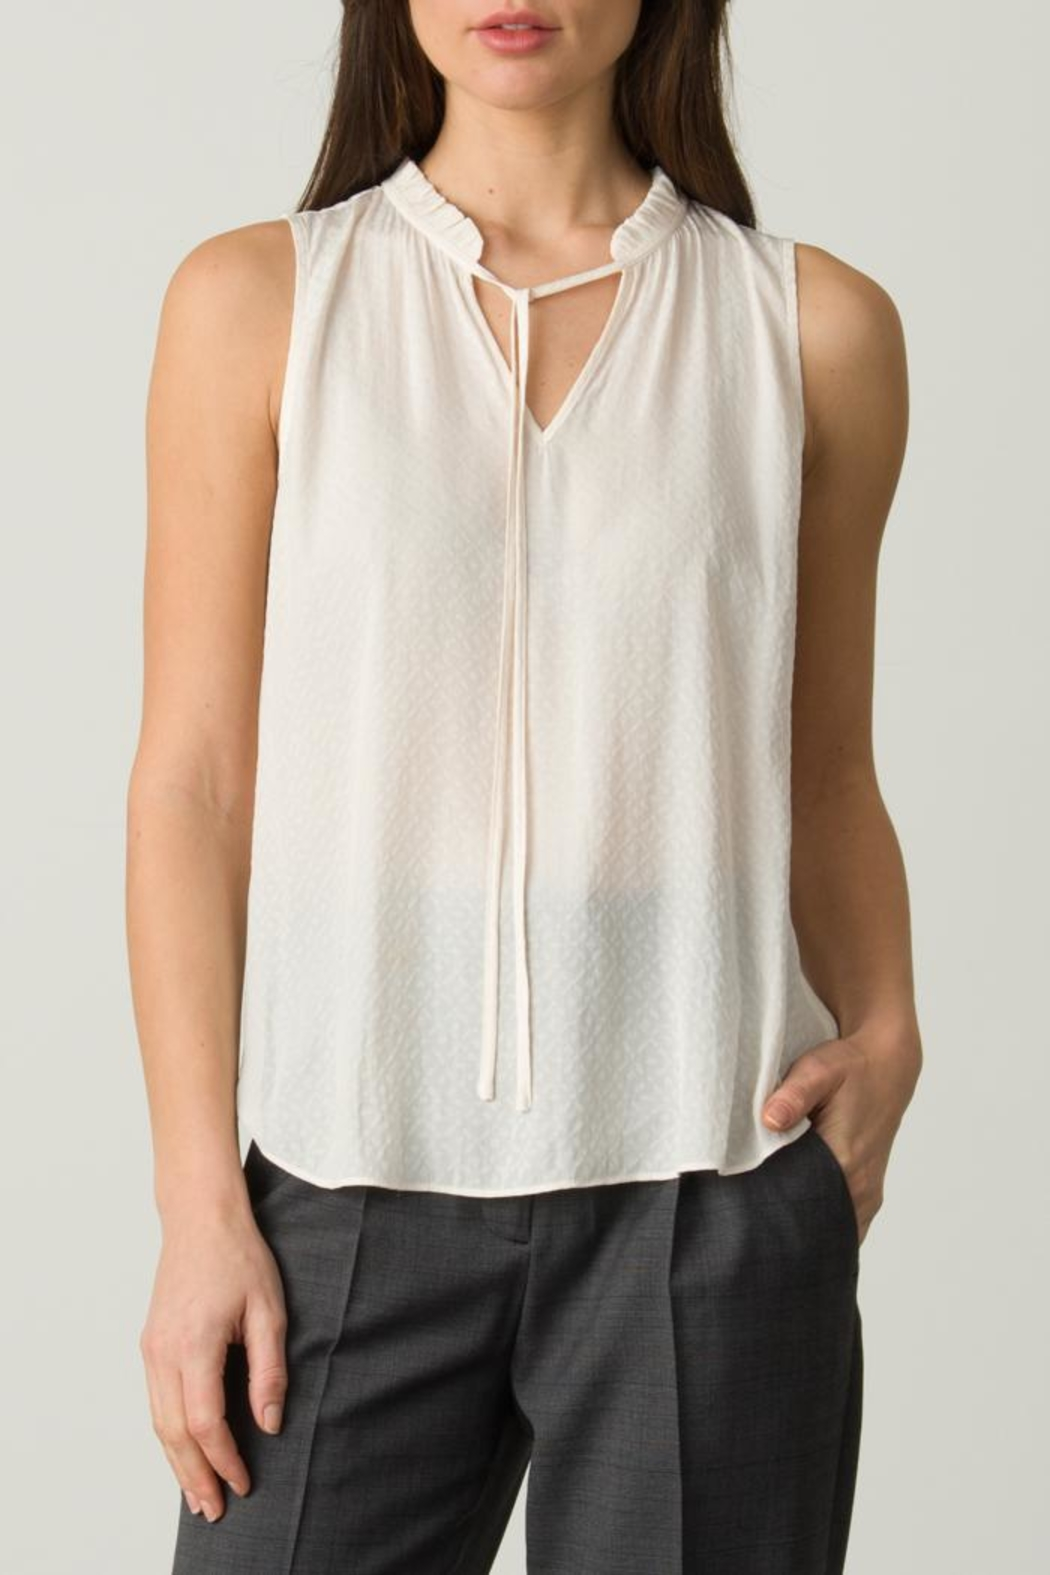 Margaret O'Leary Sleeveless Tie Top - Main Image